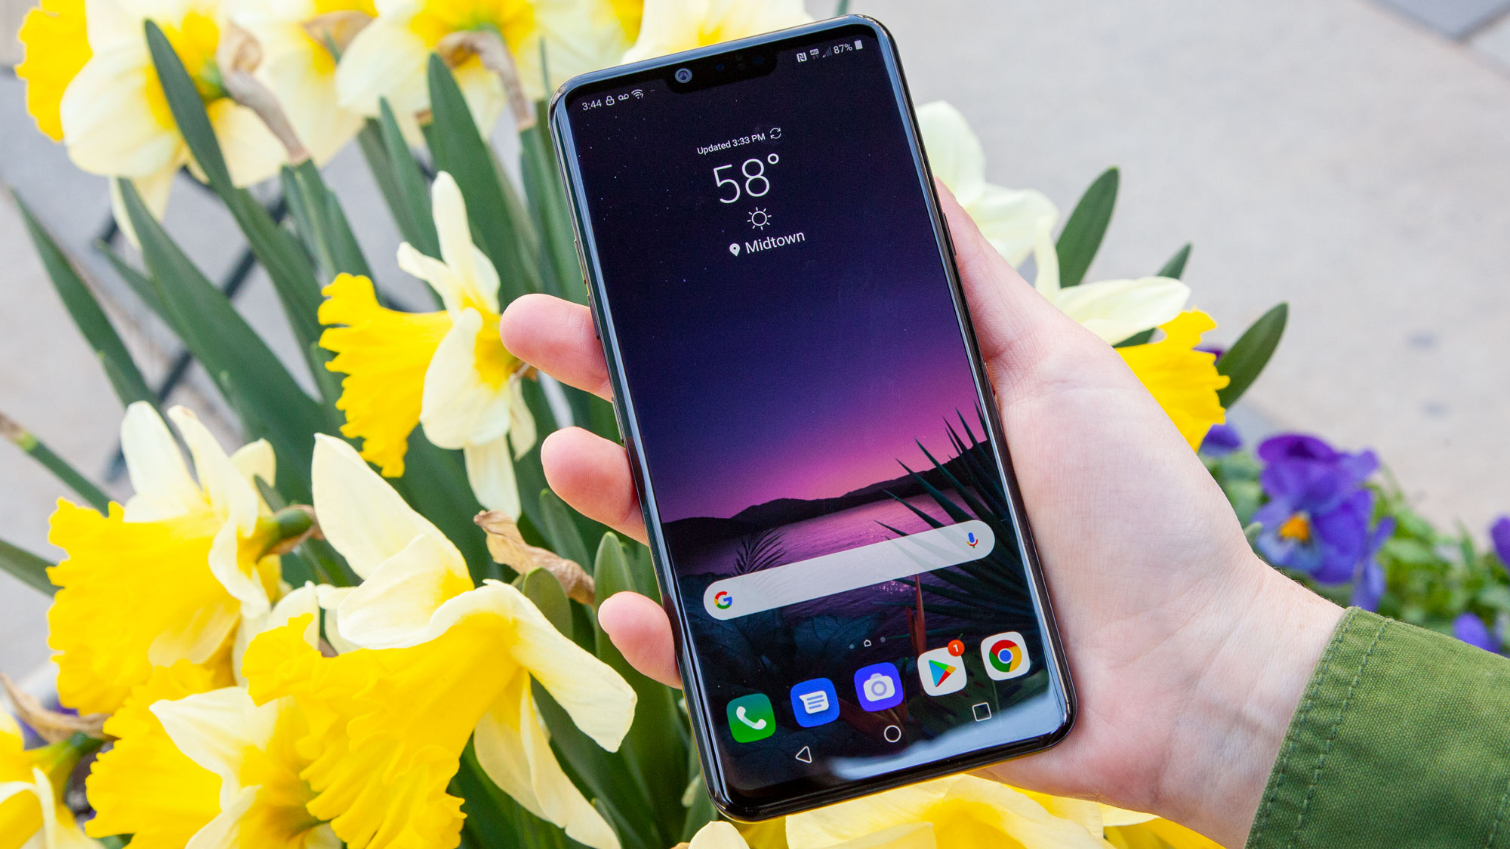 LG G8 ThinQ Review: A Good Phone Marred By Gimmicks | Tom's